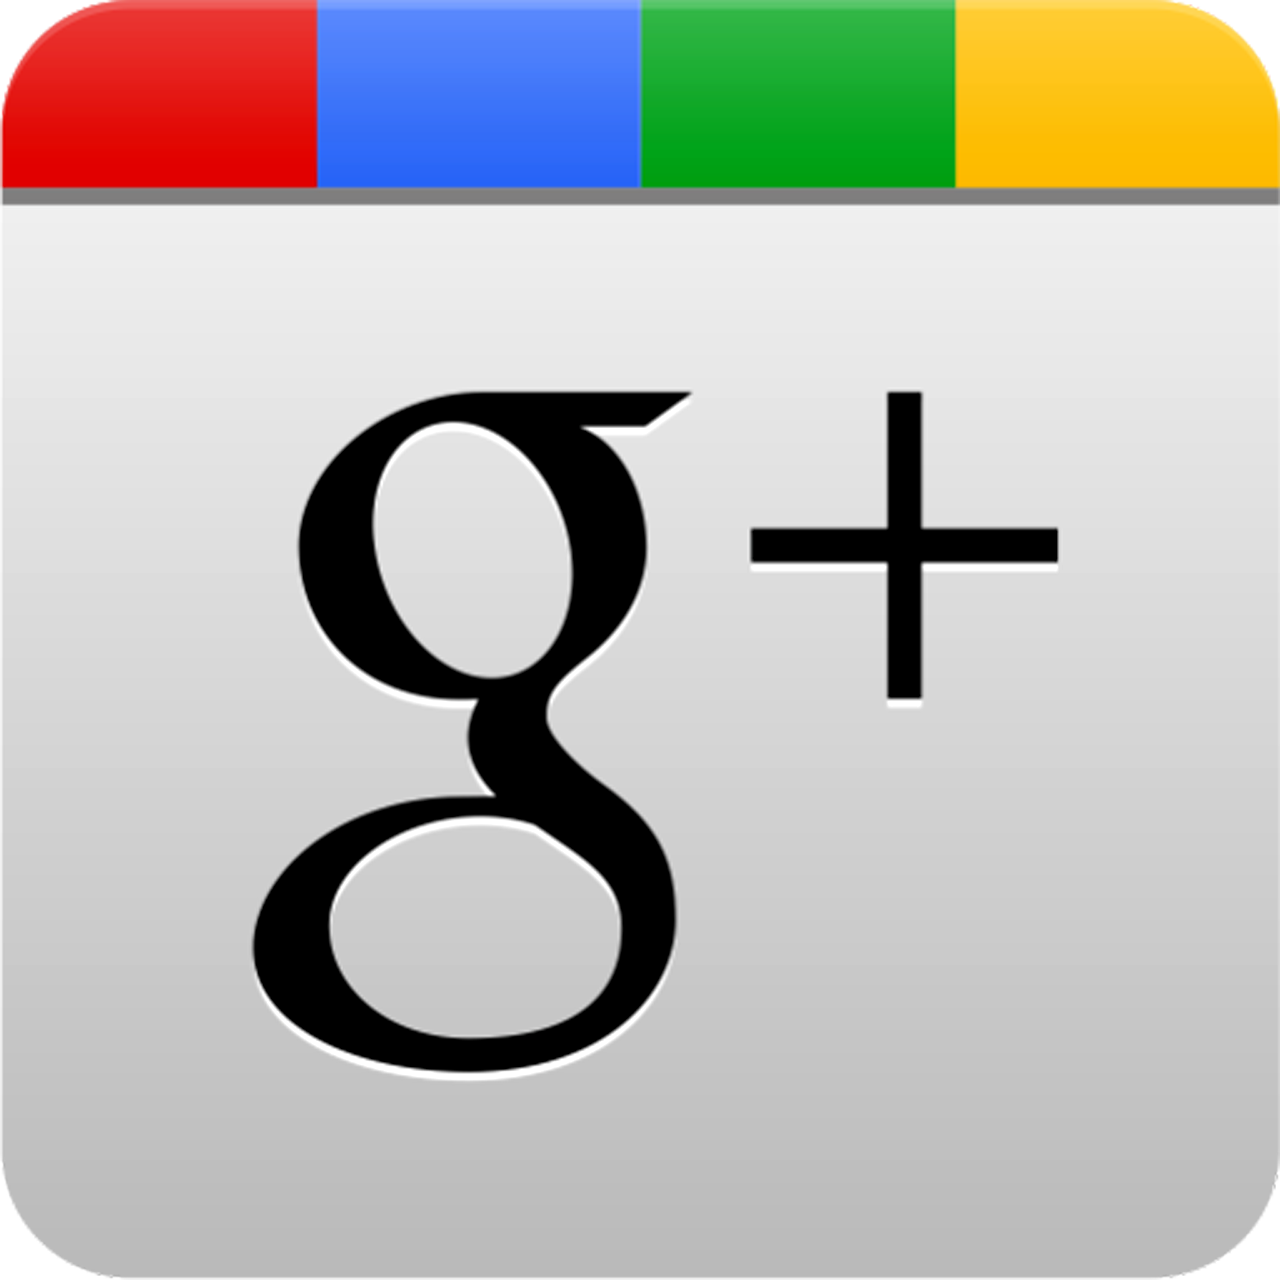 give you 100 Google plus post shares (more shares and followers from extras)